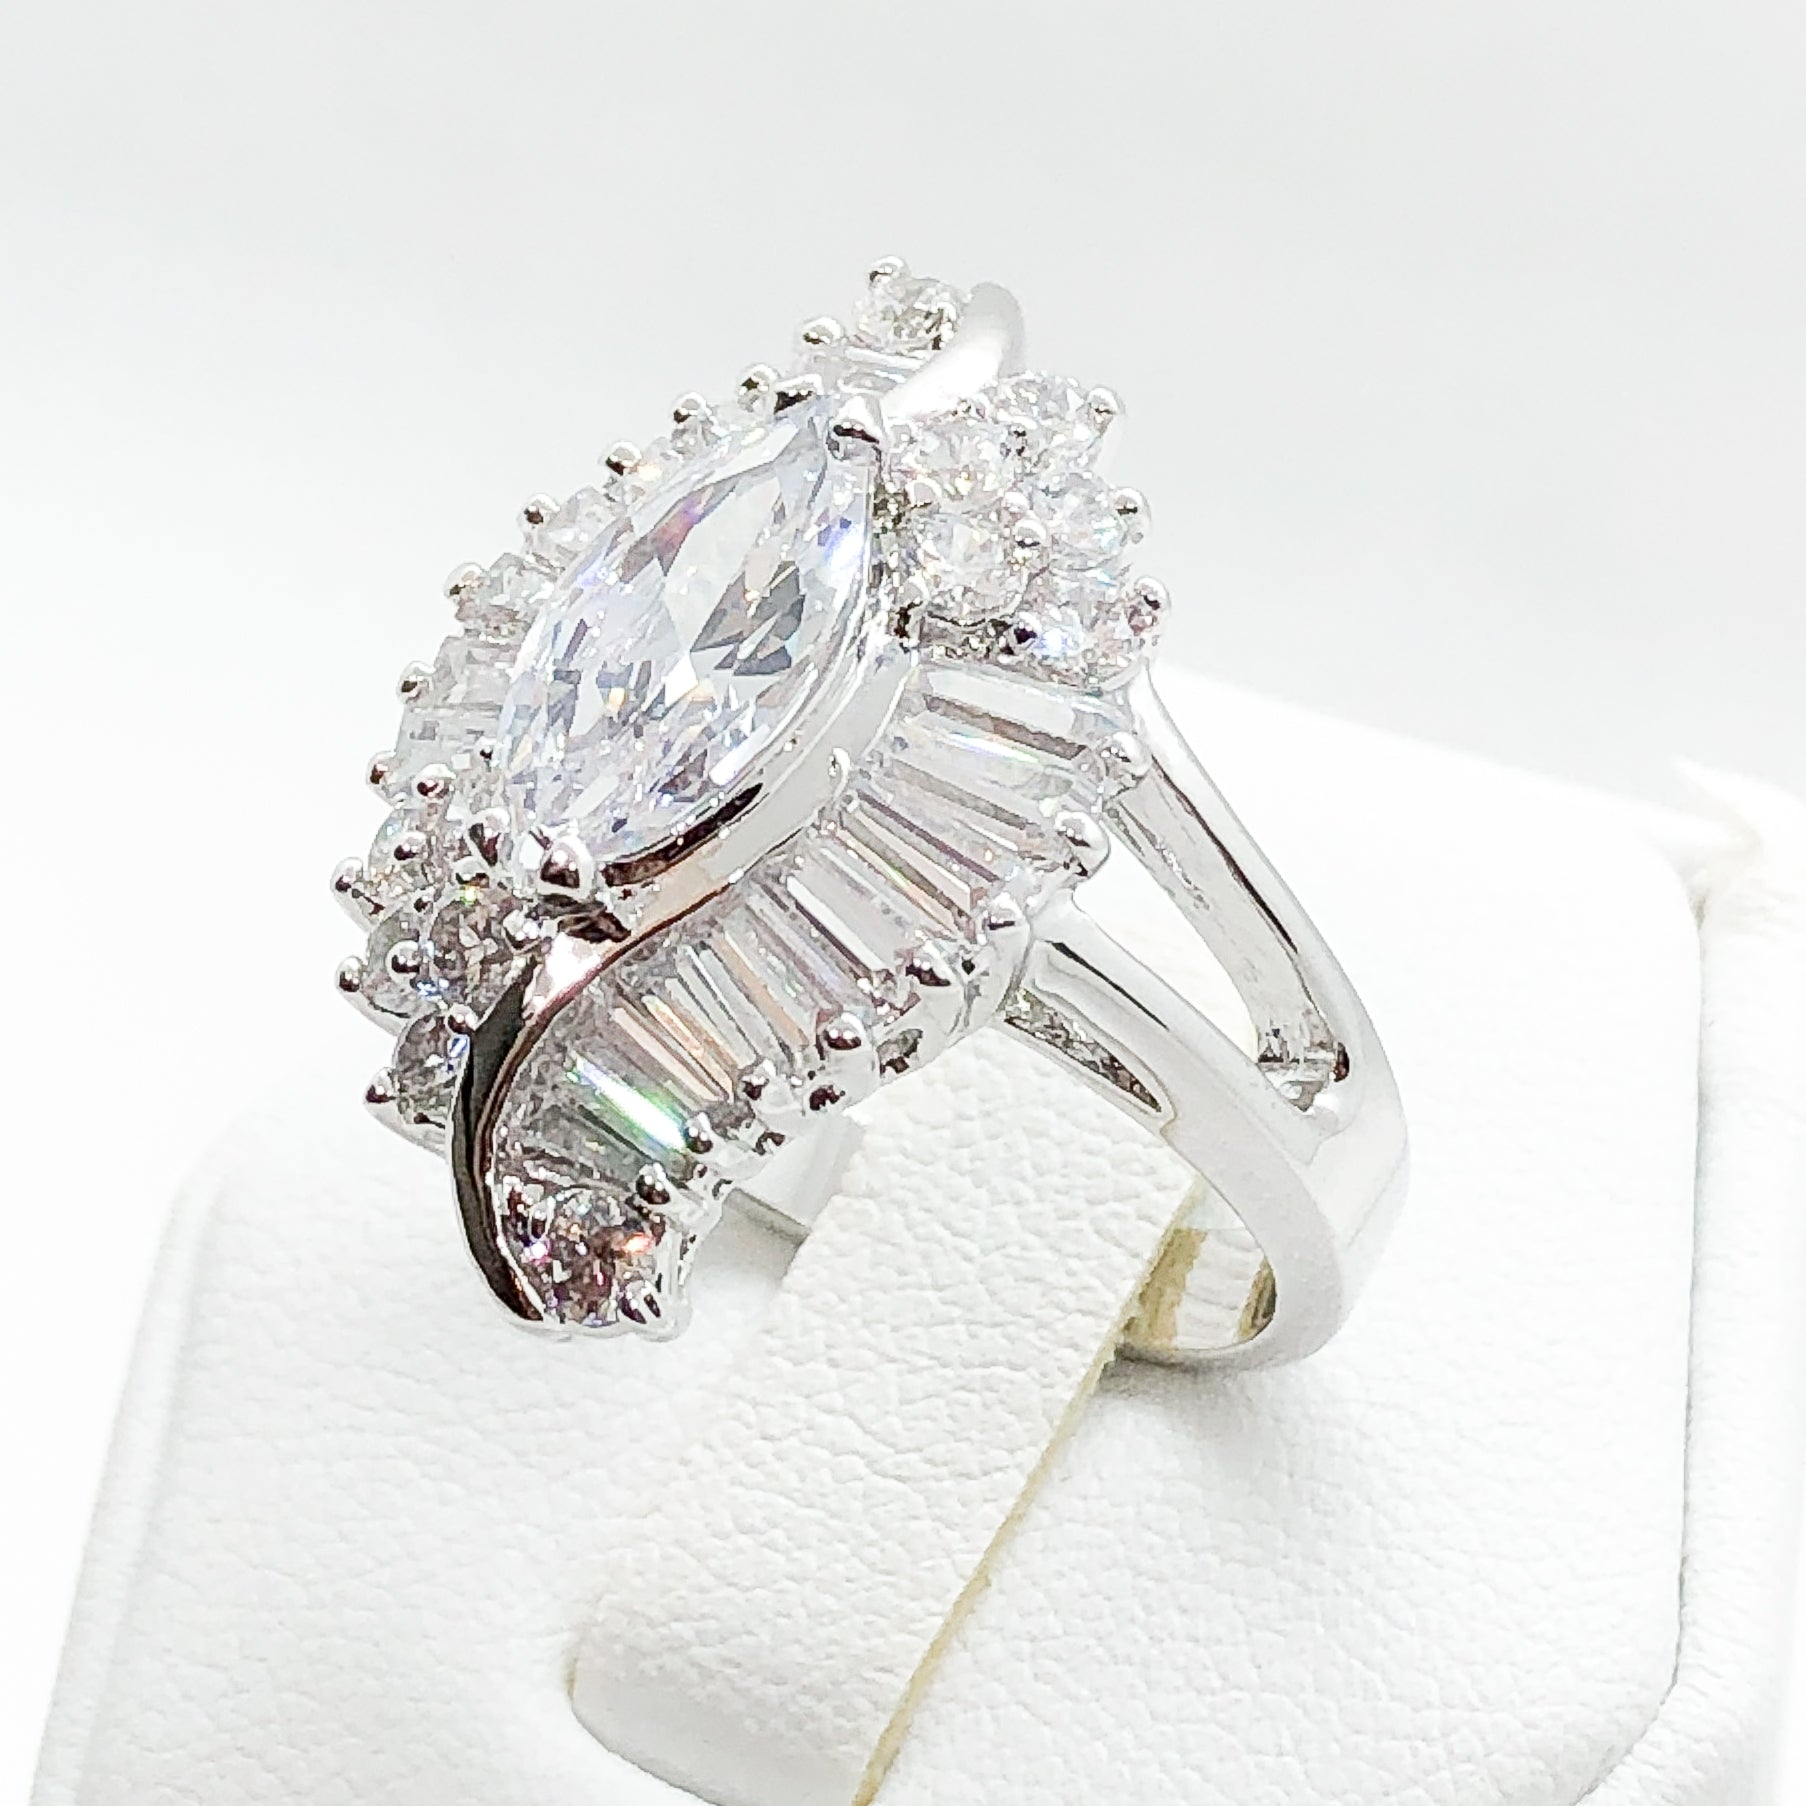 ID:R0578 Women Vintage Jewelry 18K White Gold GF Eye-Catching Engagement Wedding Solitaire Bridal Diamonique Ring With Accent